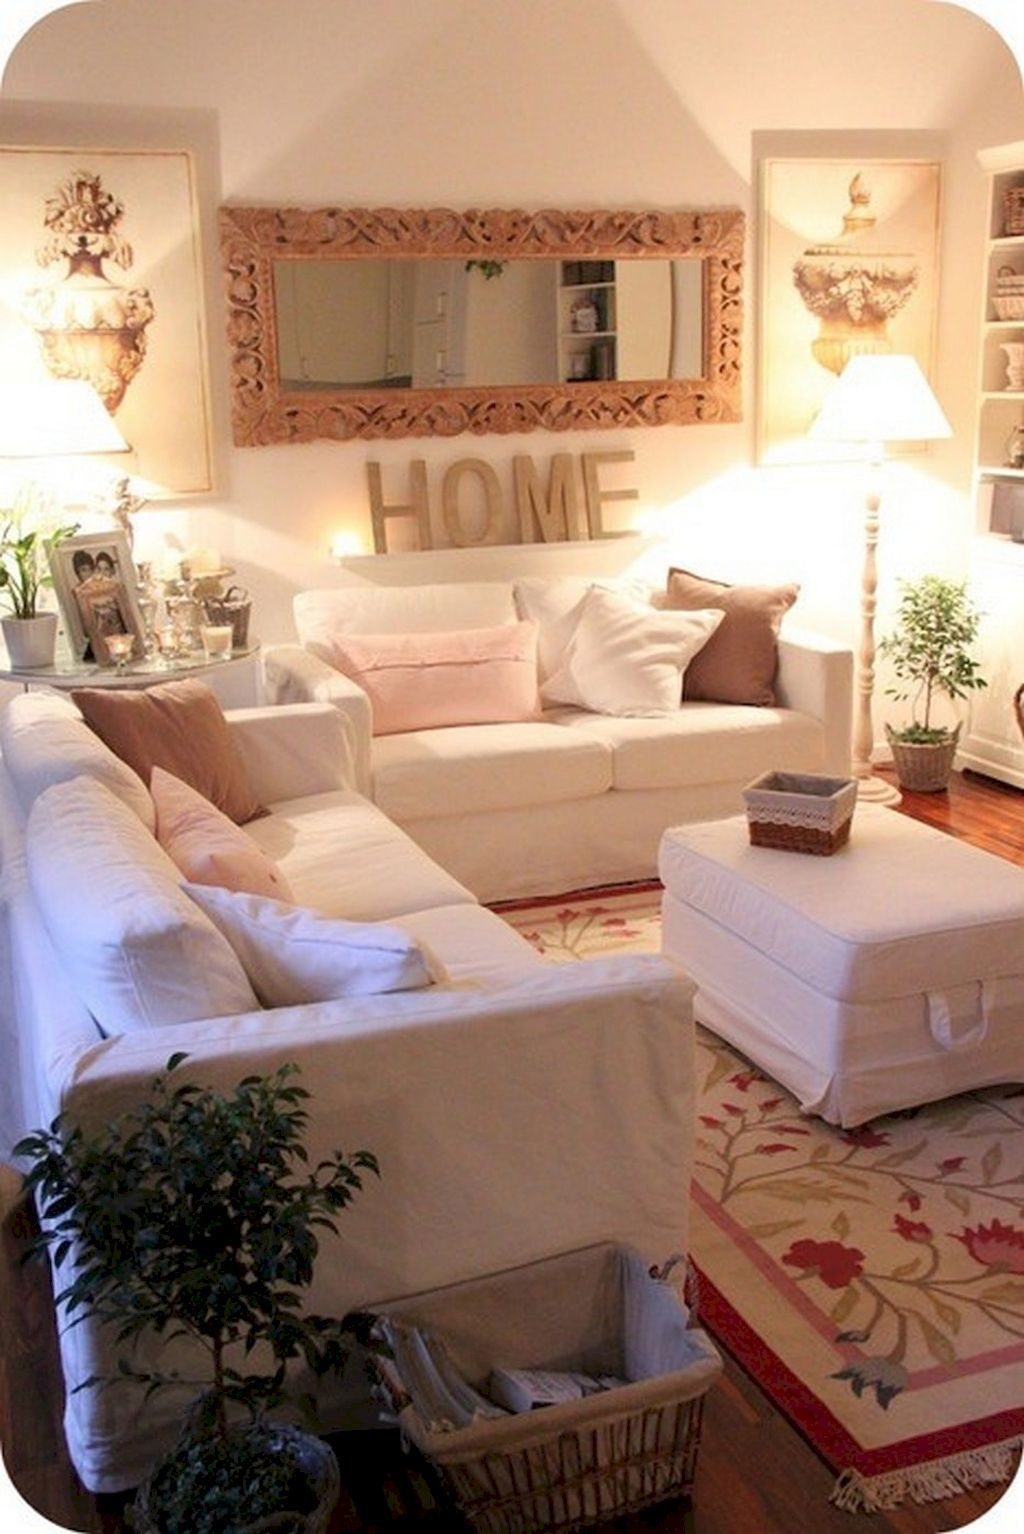 Nice 40 Beautiful And Cute Apartment Decorating Ideas On A Budget Https Decorapatio